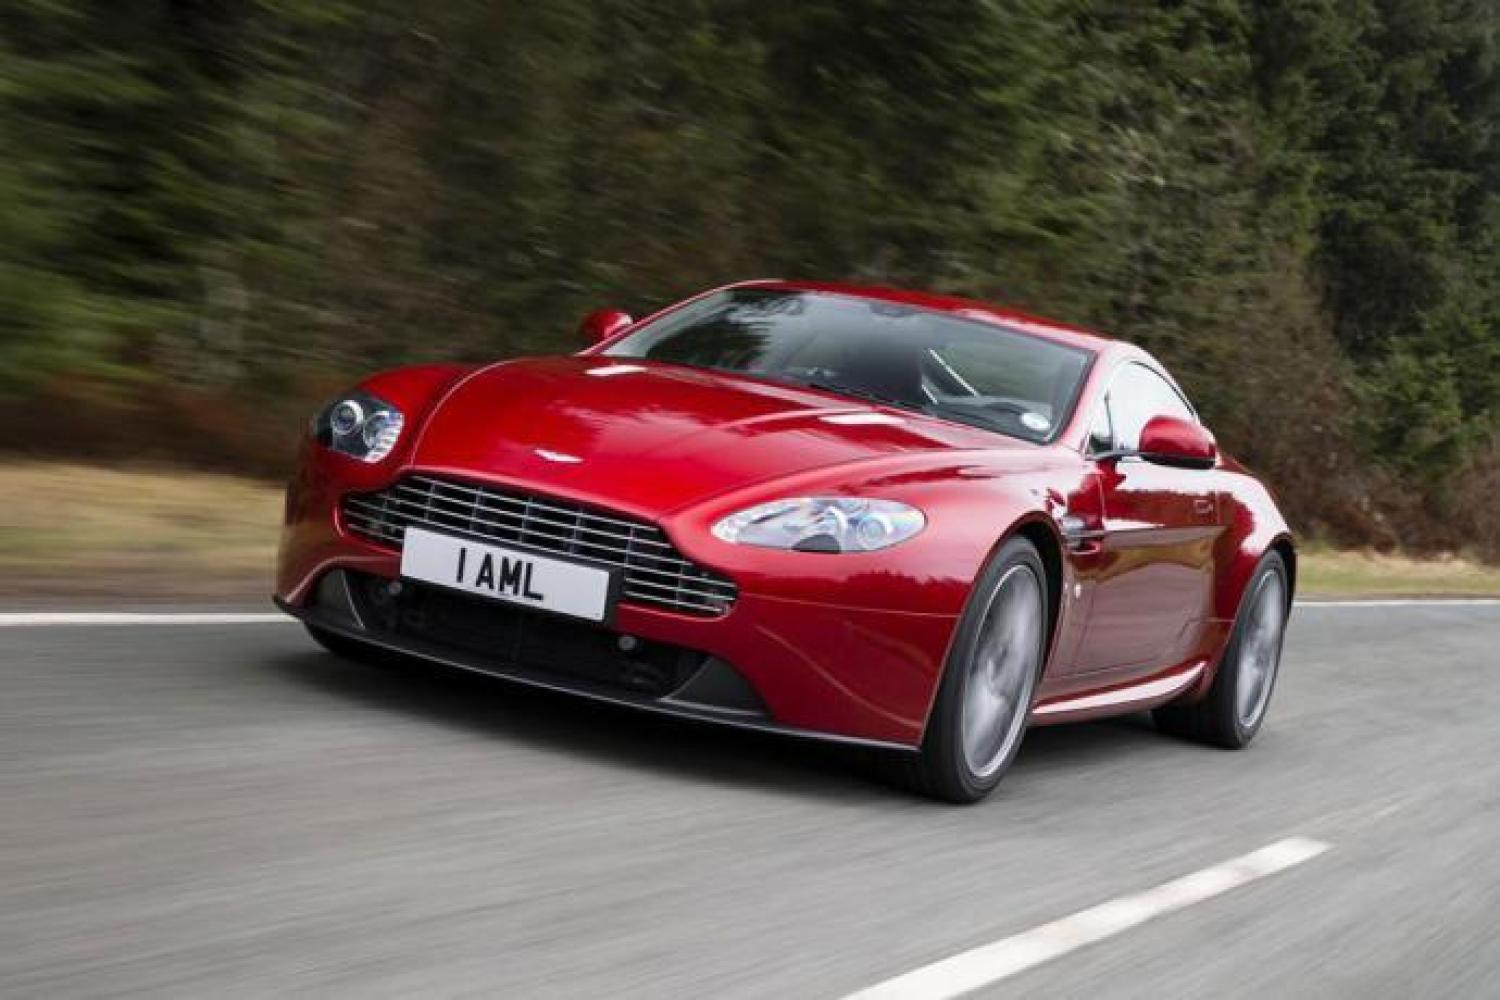 Cars Derived From The Gts Seen At Le Mans Aston Martin V8 Vantage 24h Lemans Com